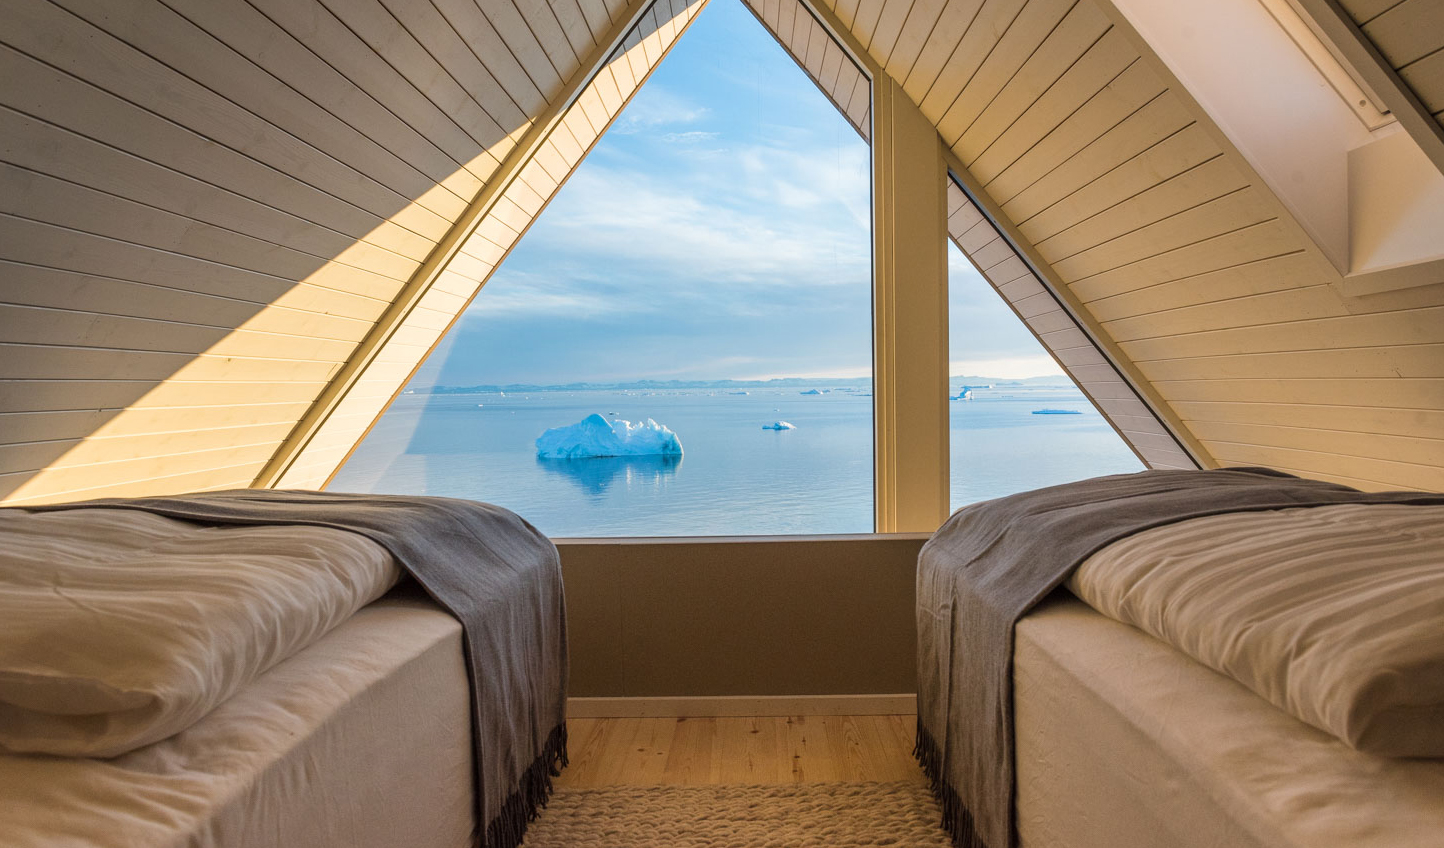 Never has there been a more tranquil bedroom view